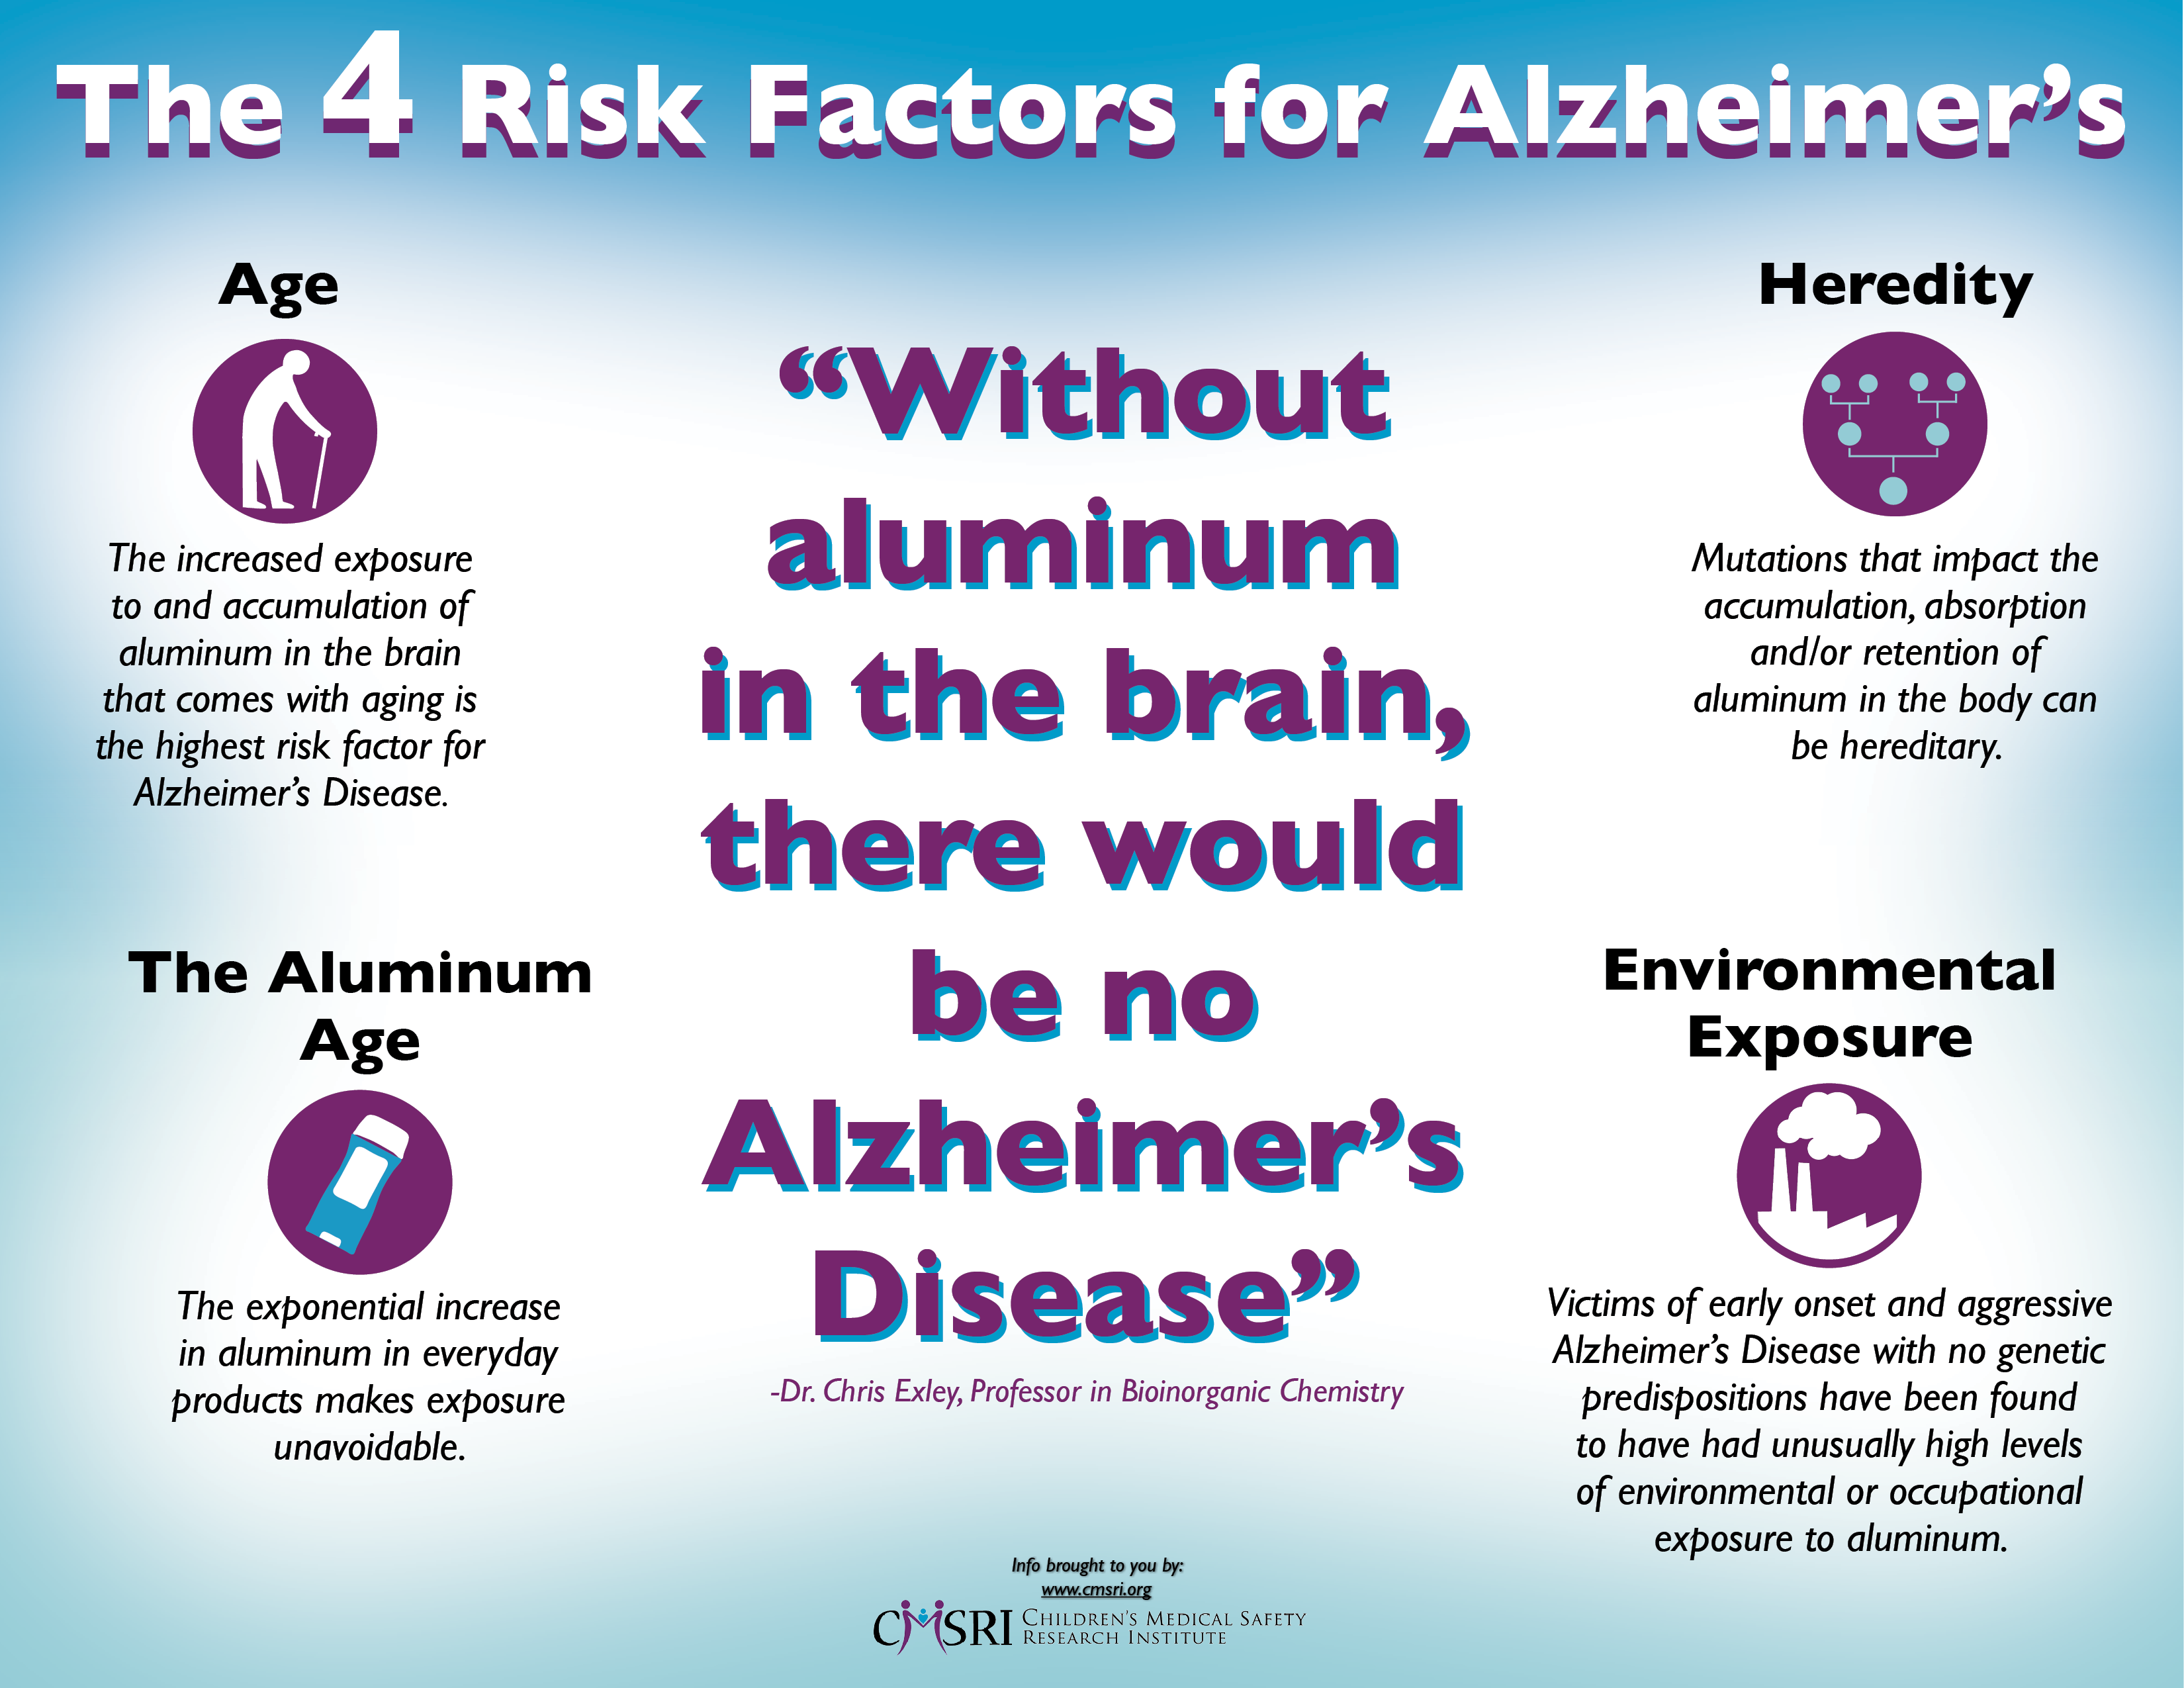 CMSRI-Infographic-4 Risk Factors for Alzheimers-061317 Update.png